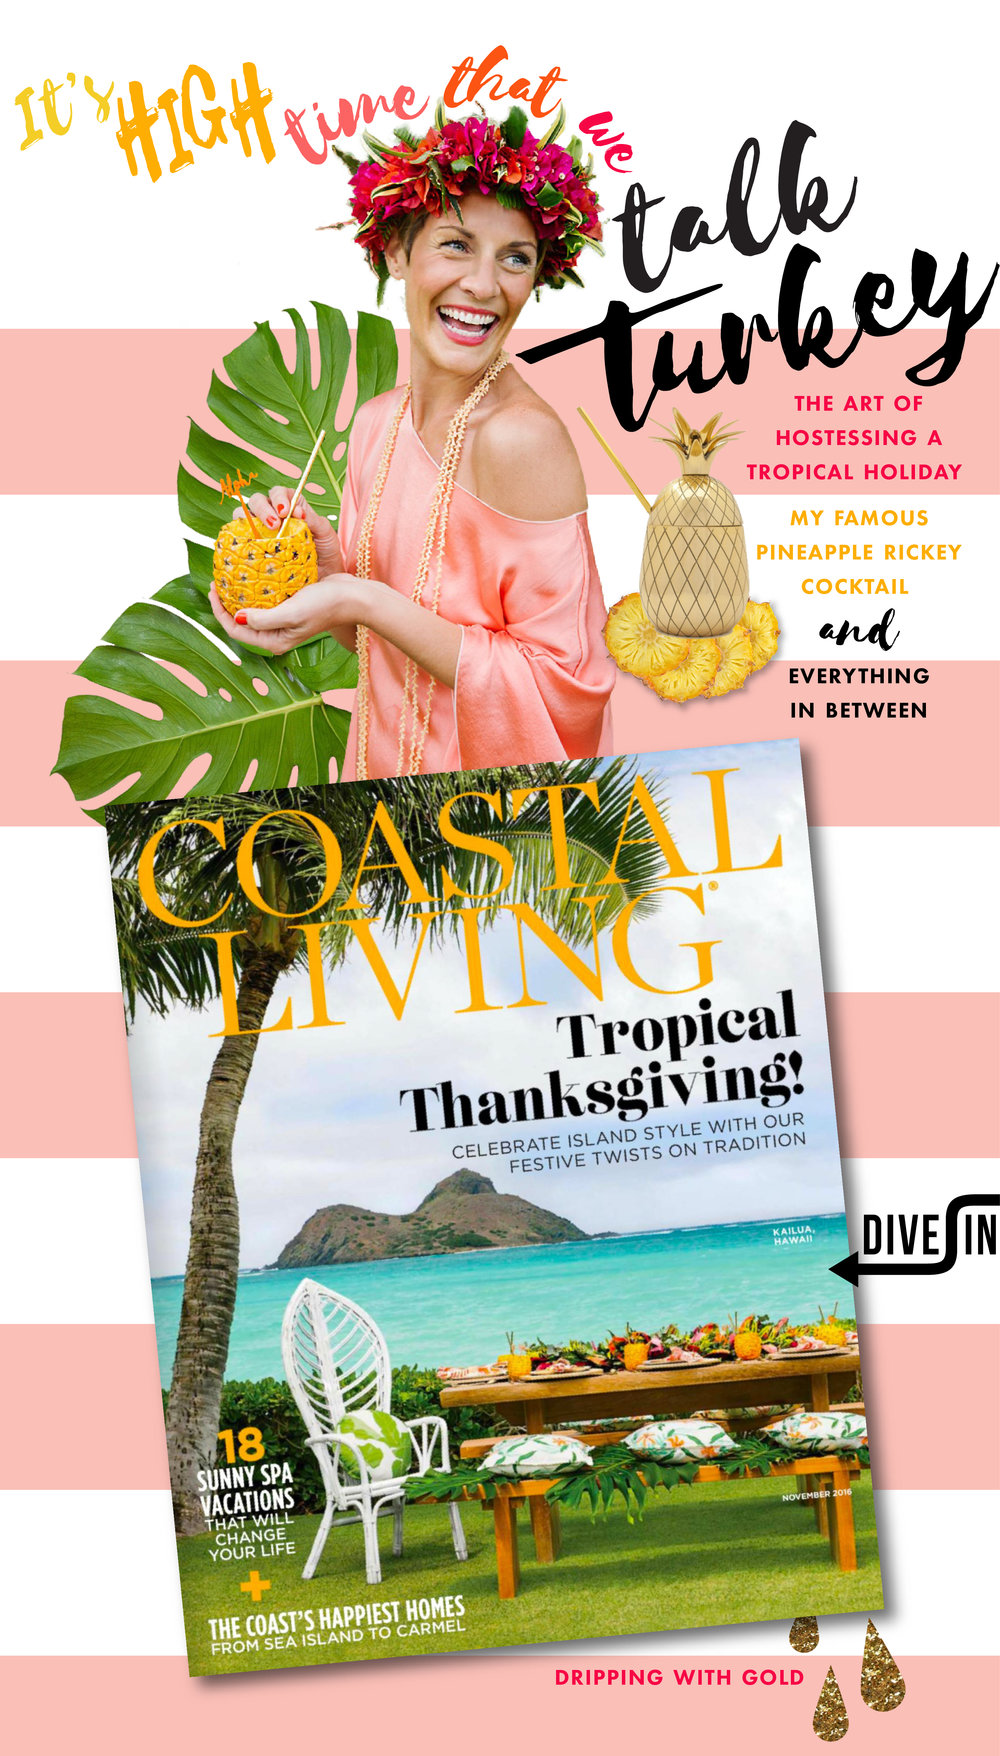 MRS_Coastal Living Nov16_cover-01.jpg